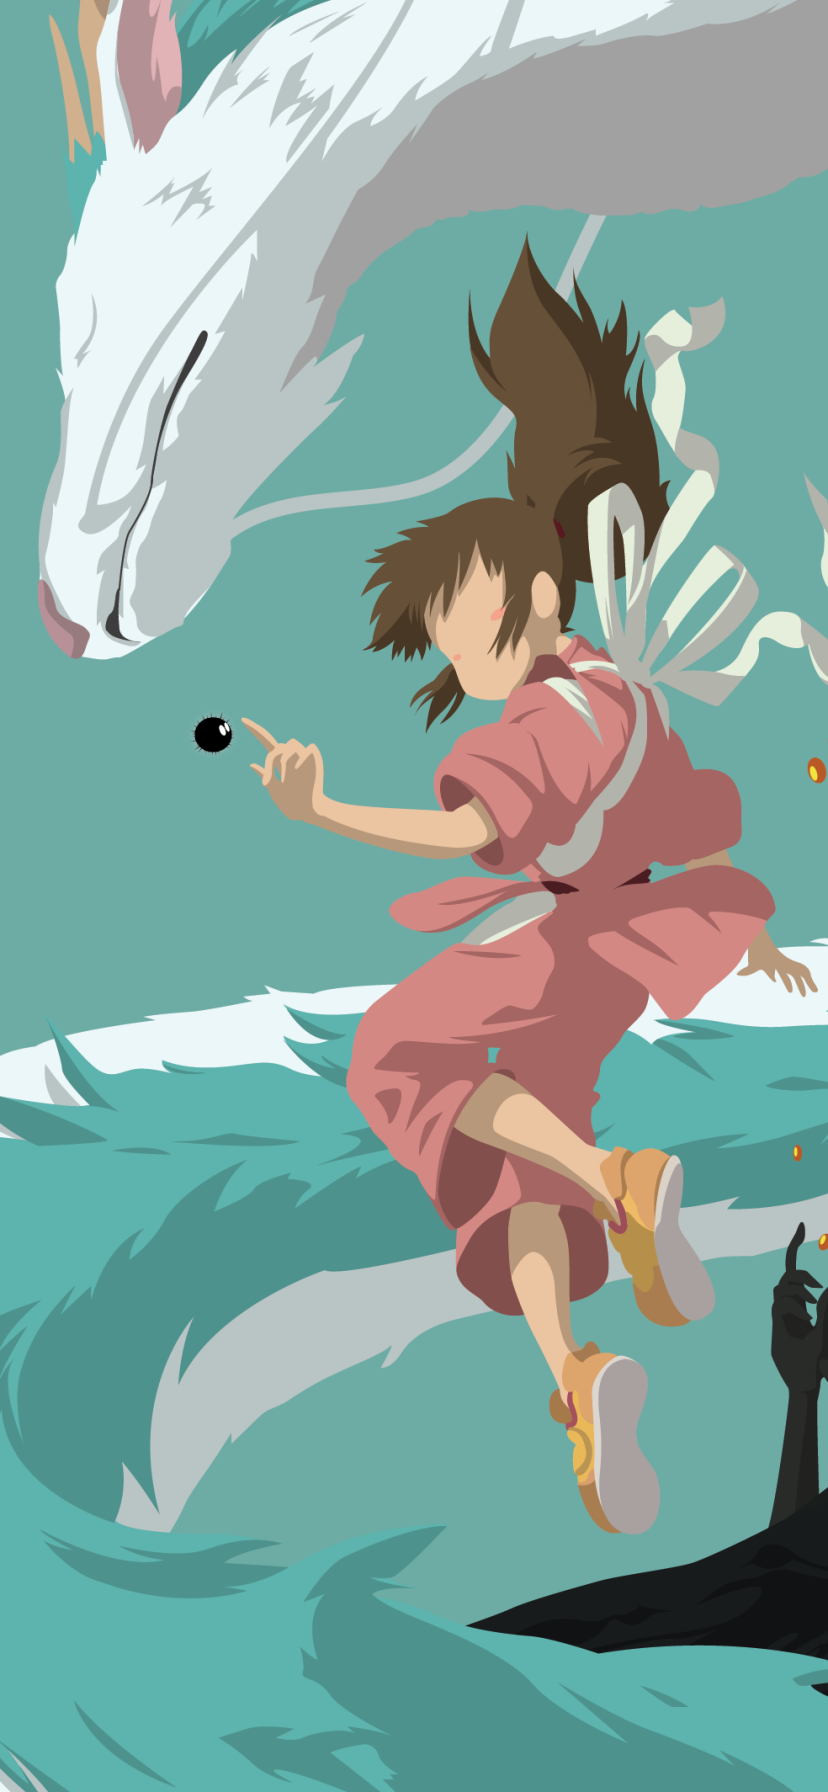 Anime Spirited Away 720x1520 Wallpaper Id 844814 Mobile Abyss